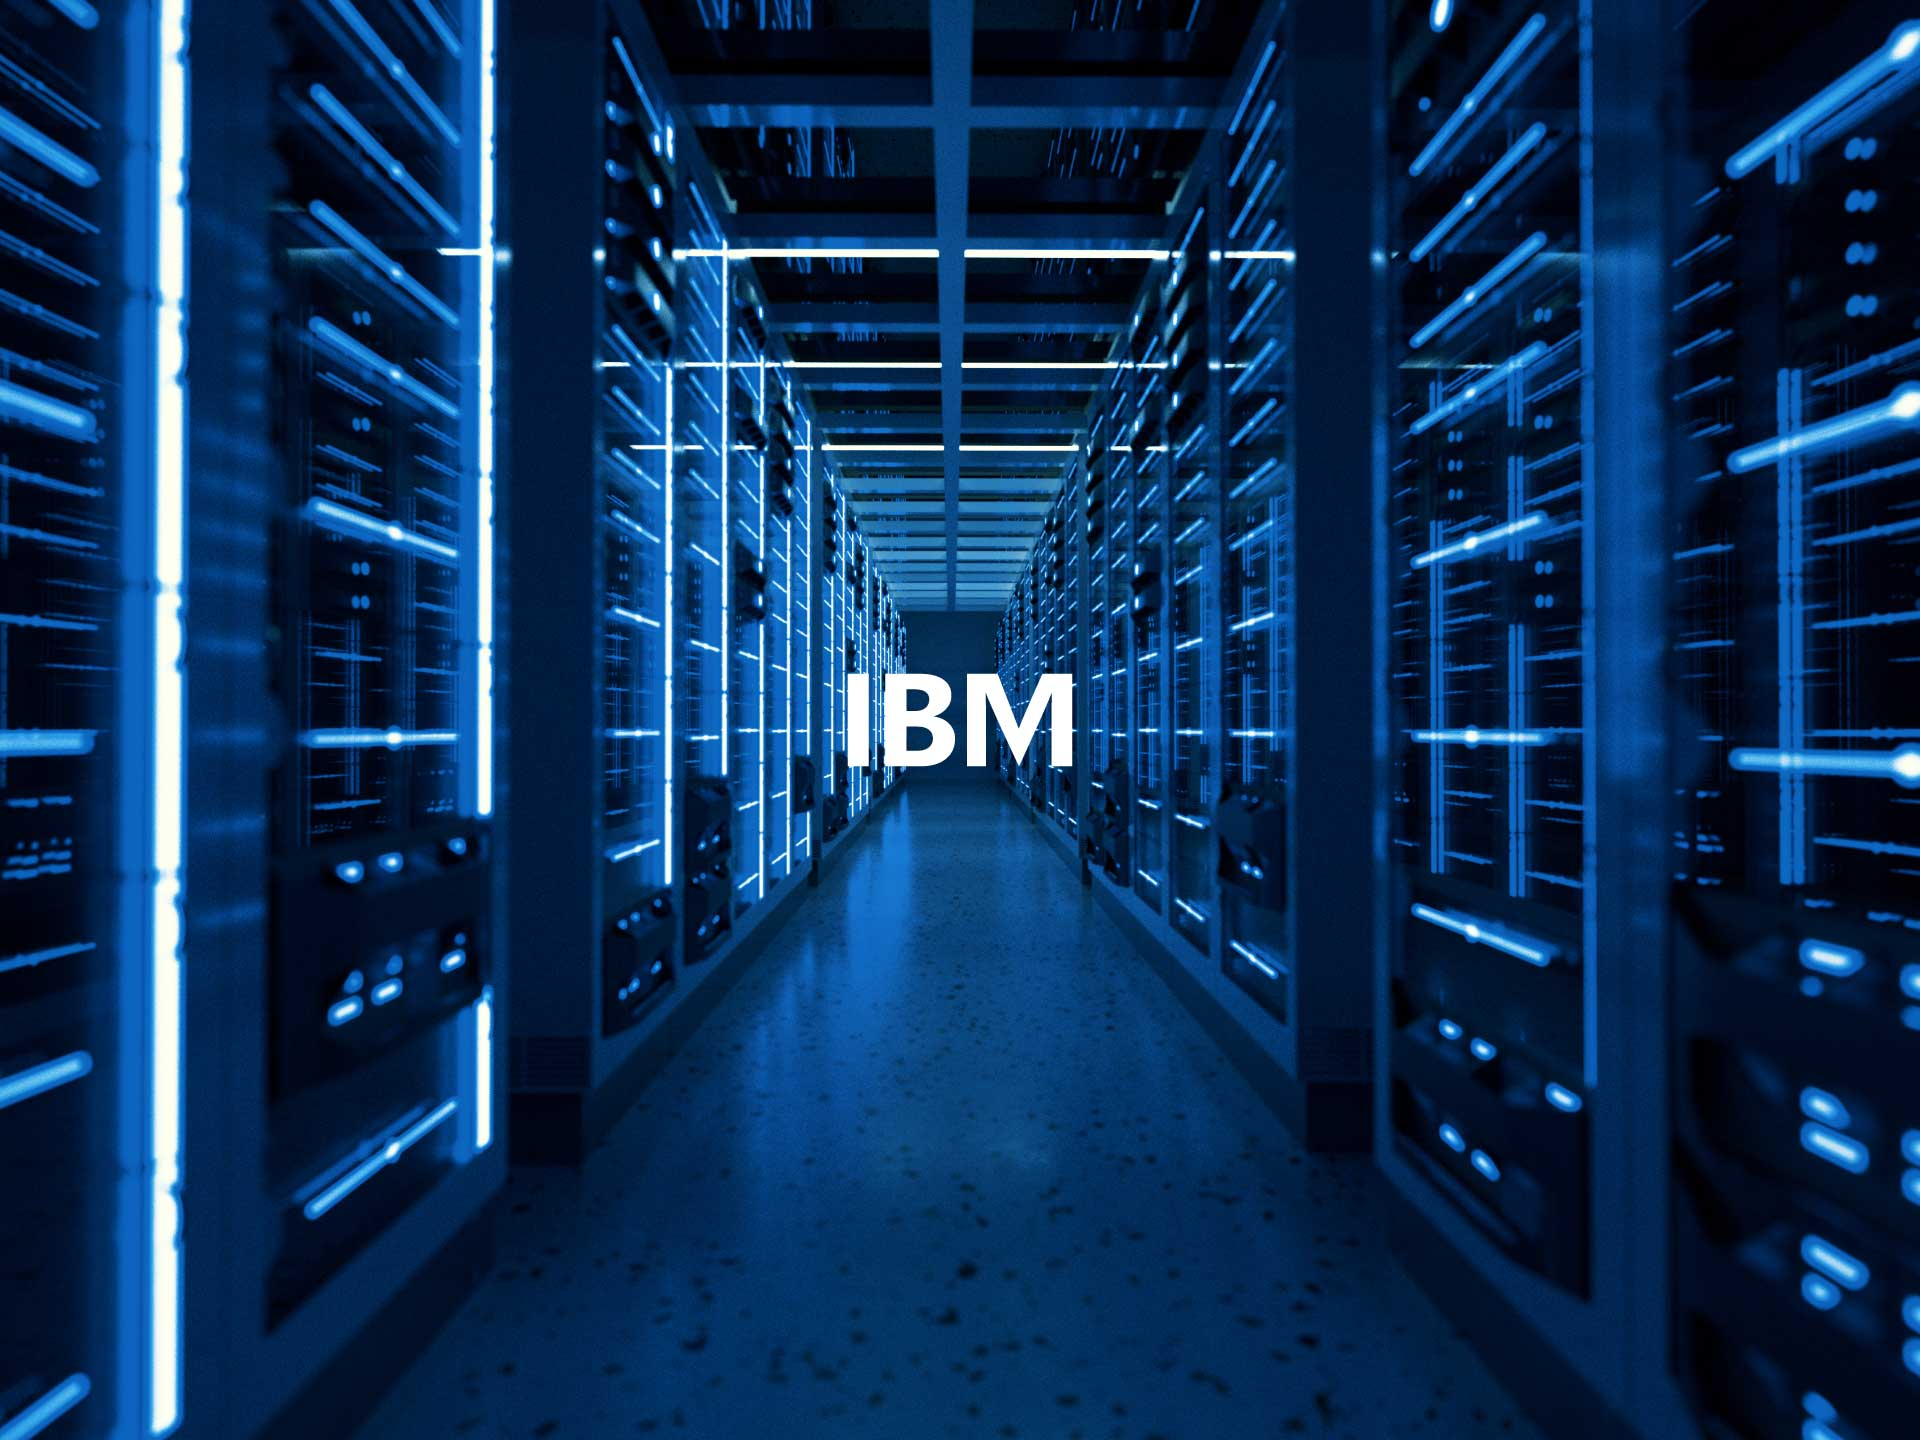 IBM's Climate Change Goal: Net-Zero Greenhouse Gas Emissions by 2030